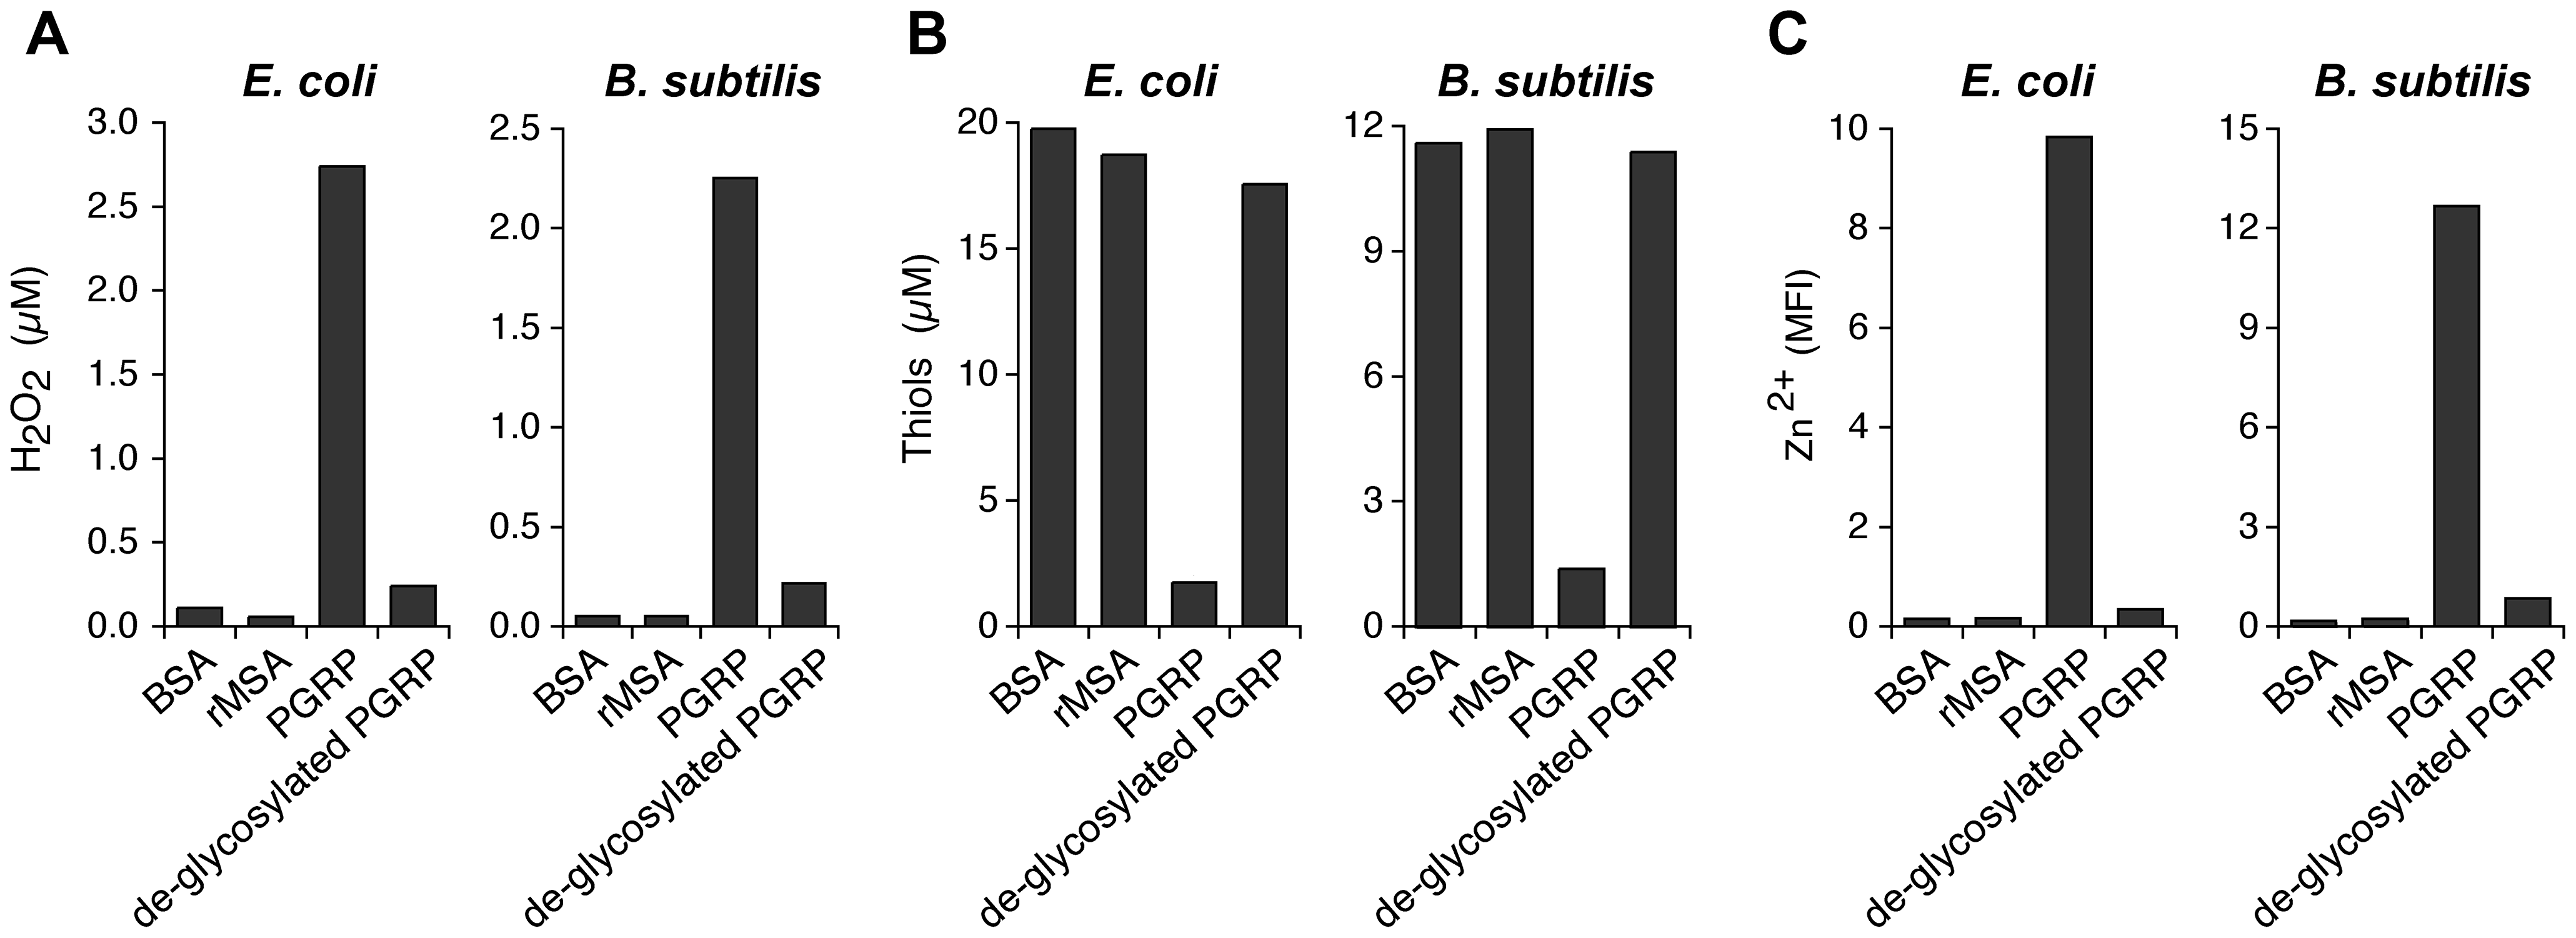 De-glycosylation abolishes the ability of PGRP to induce intracellular production of H<sub>2</sub>O<sub>2</sub>, depletion of cellular thiols, and increases in intracellular Zn<sup>2+</sup>.